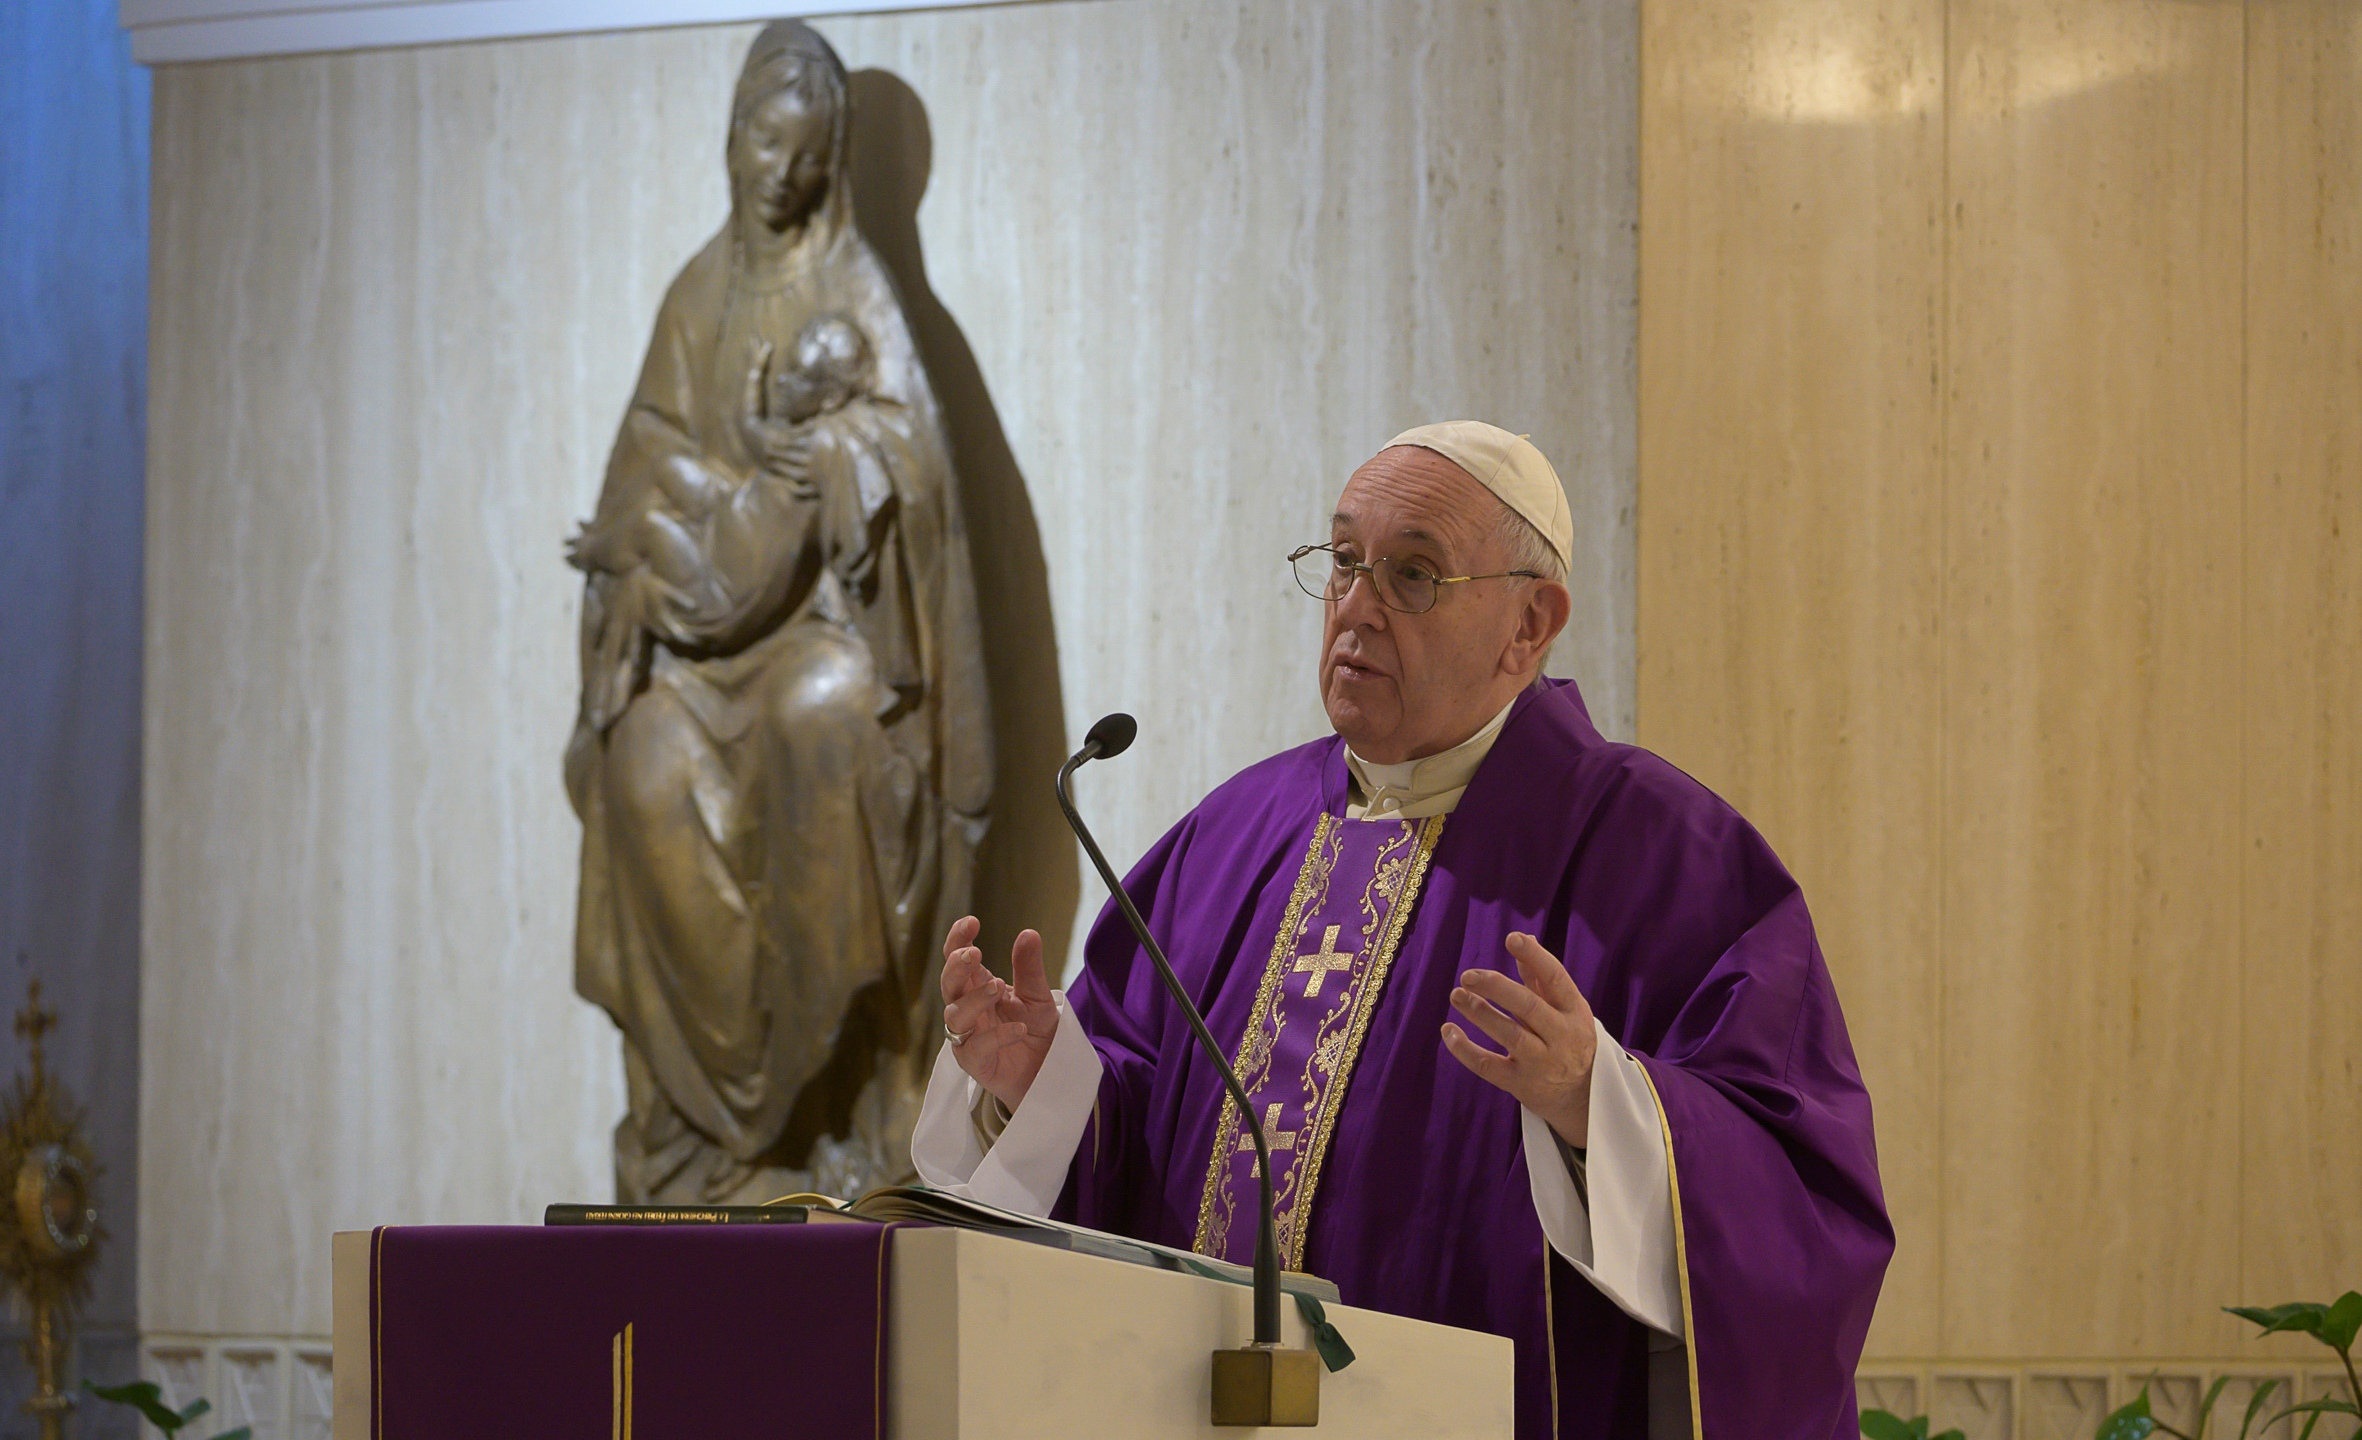 Pope Francis celebrates Mass at his Santa Marta residence, at the Vatican, Friday, March 27, 2020. The new coronavirus causes mild or moderate symptoms for most people, but for some, especially older adults and people with existing health problems, it can cause more severe illness or death. (Vatican News via AP)